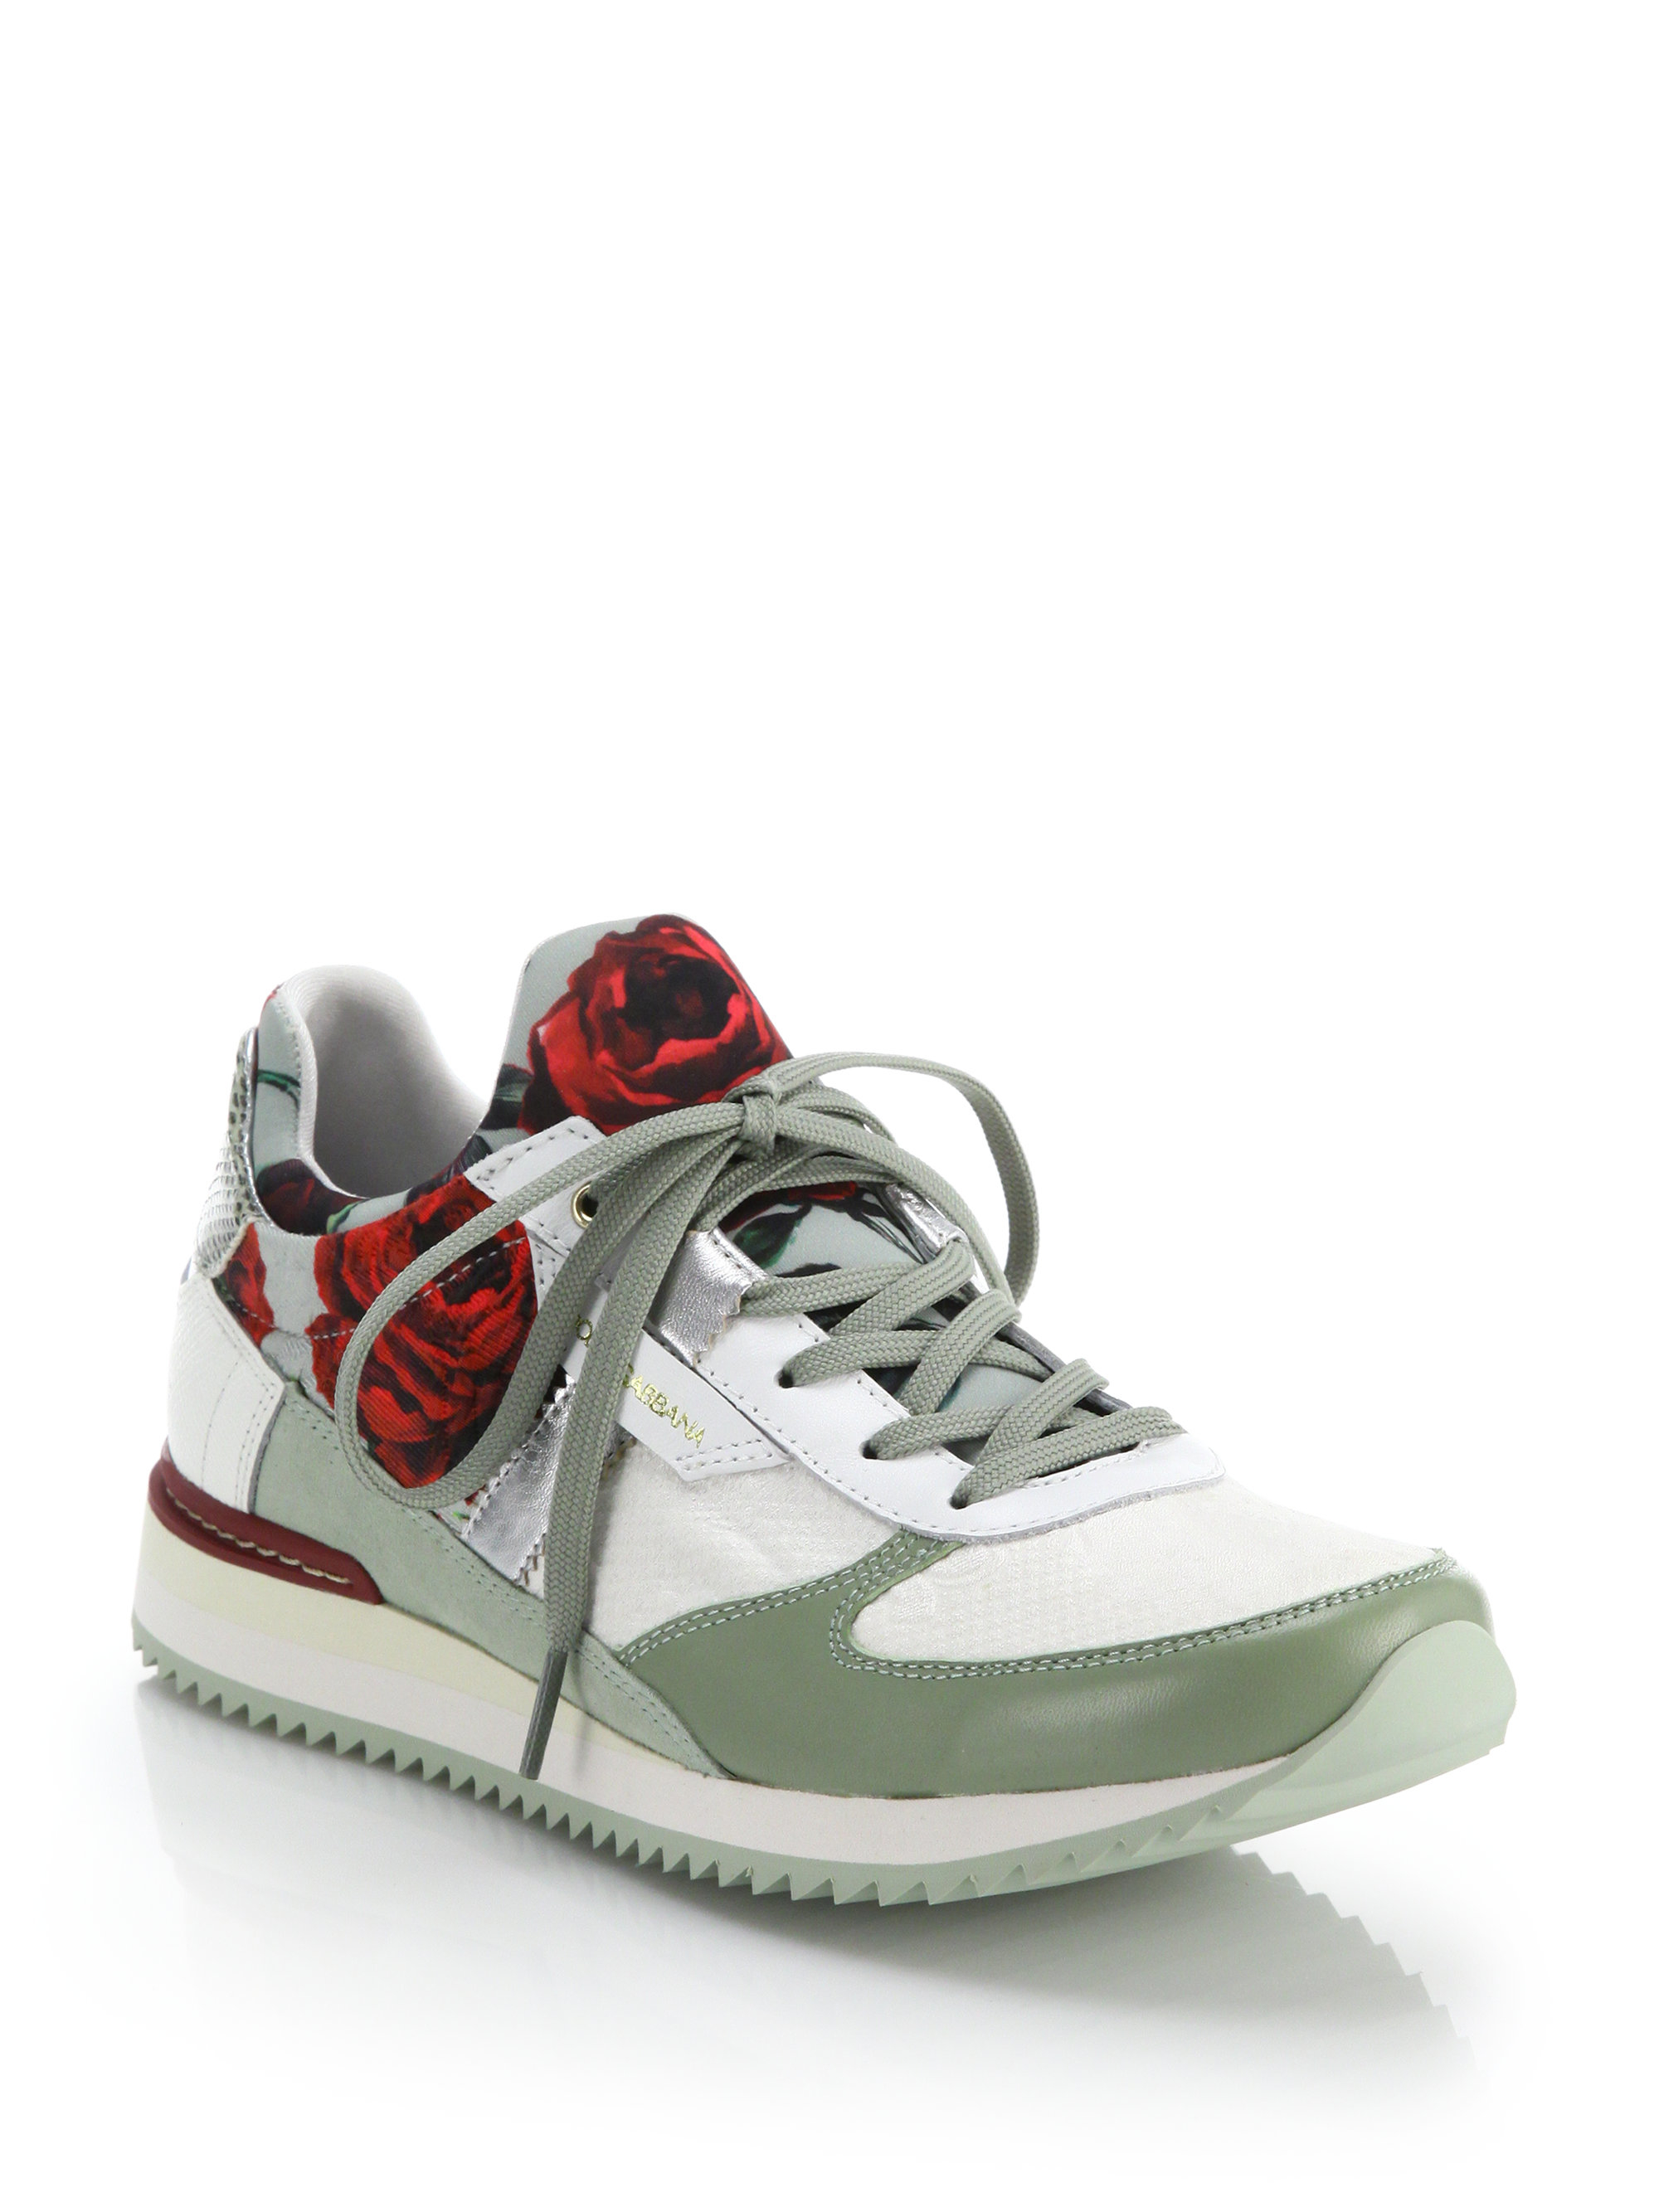 dolce gabbana leather trimmed rose print sneakers in green lyst. Black Bedroom Furniture Sets. Home Design Ideas